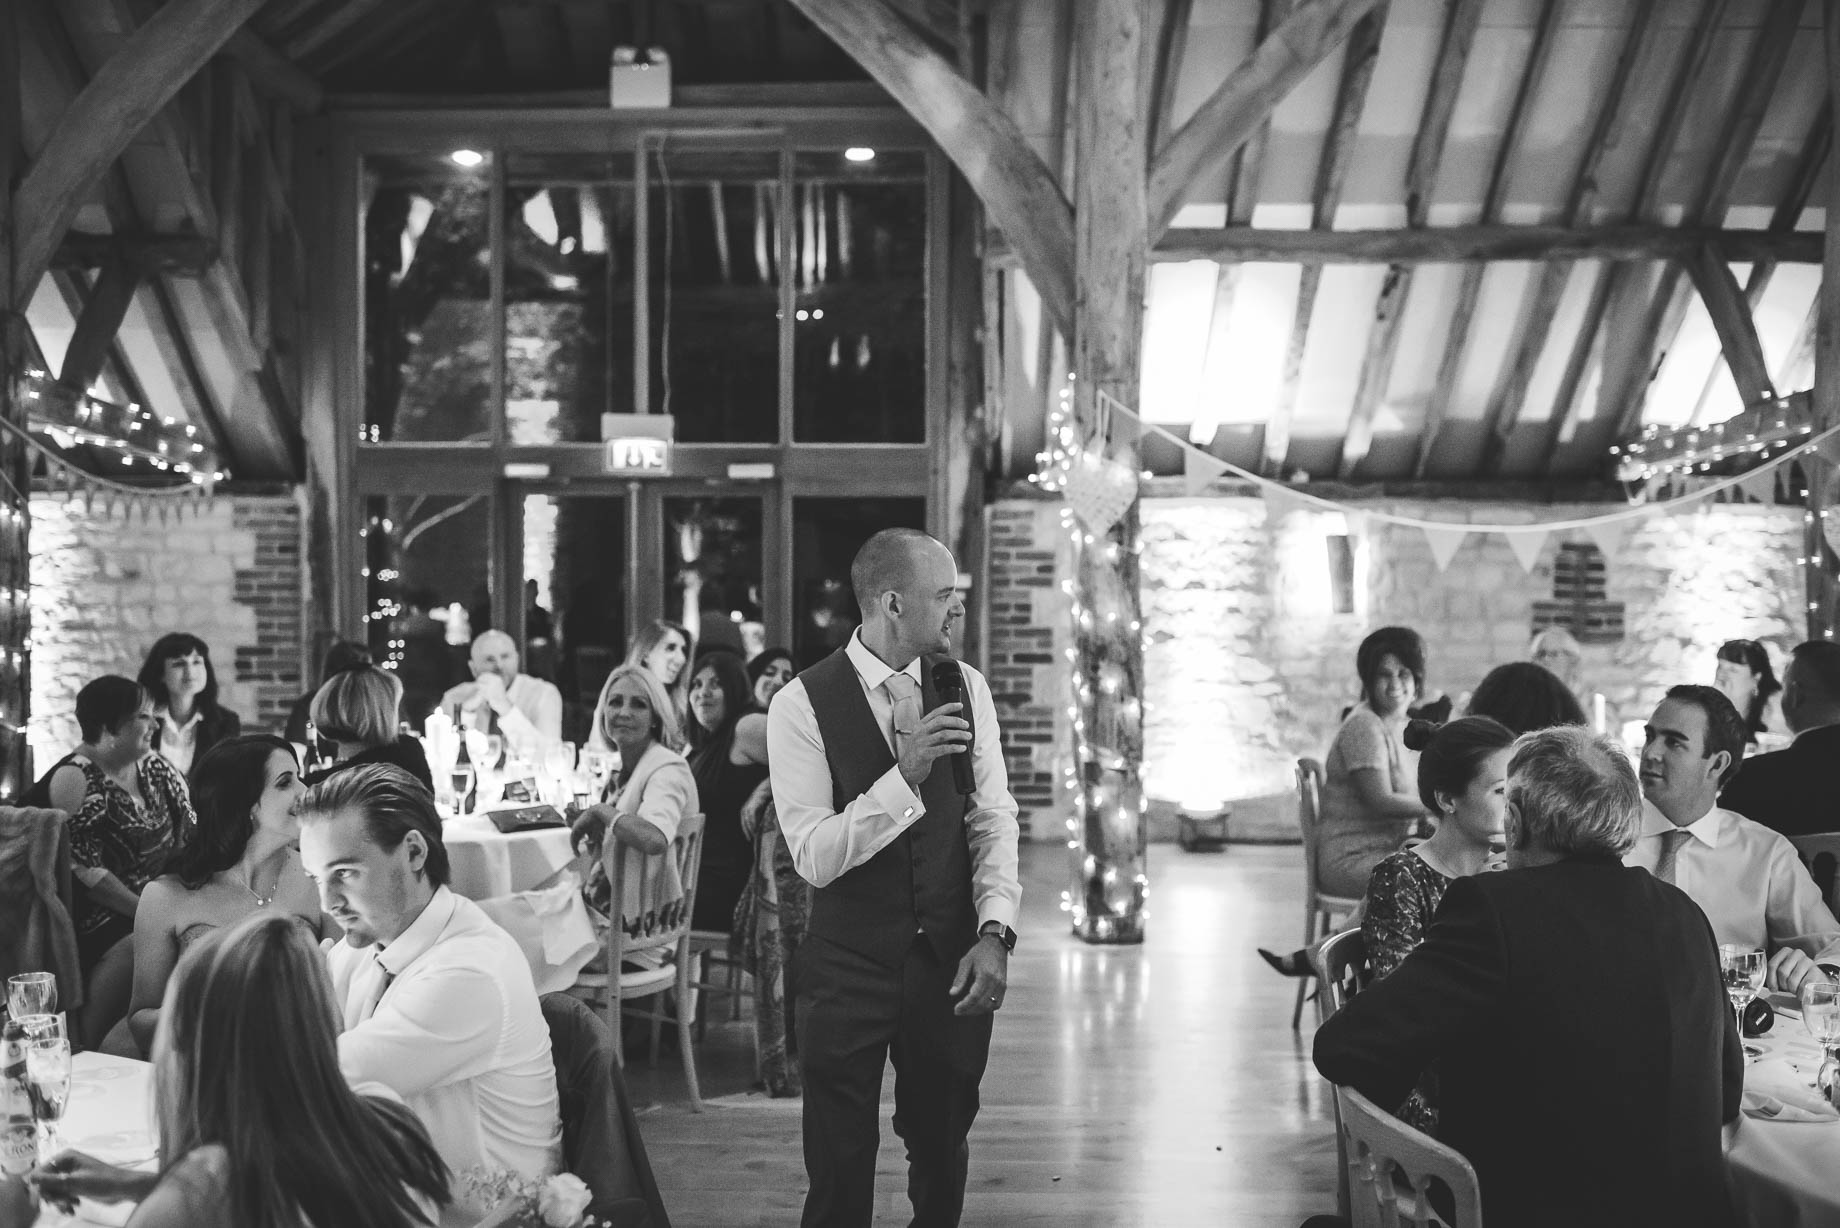 Bury Court Barn wedding photography - Guy Collier Photography - Karen and John (136 of 166)